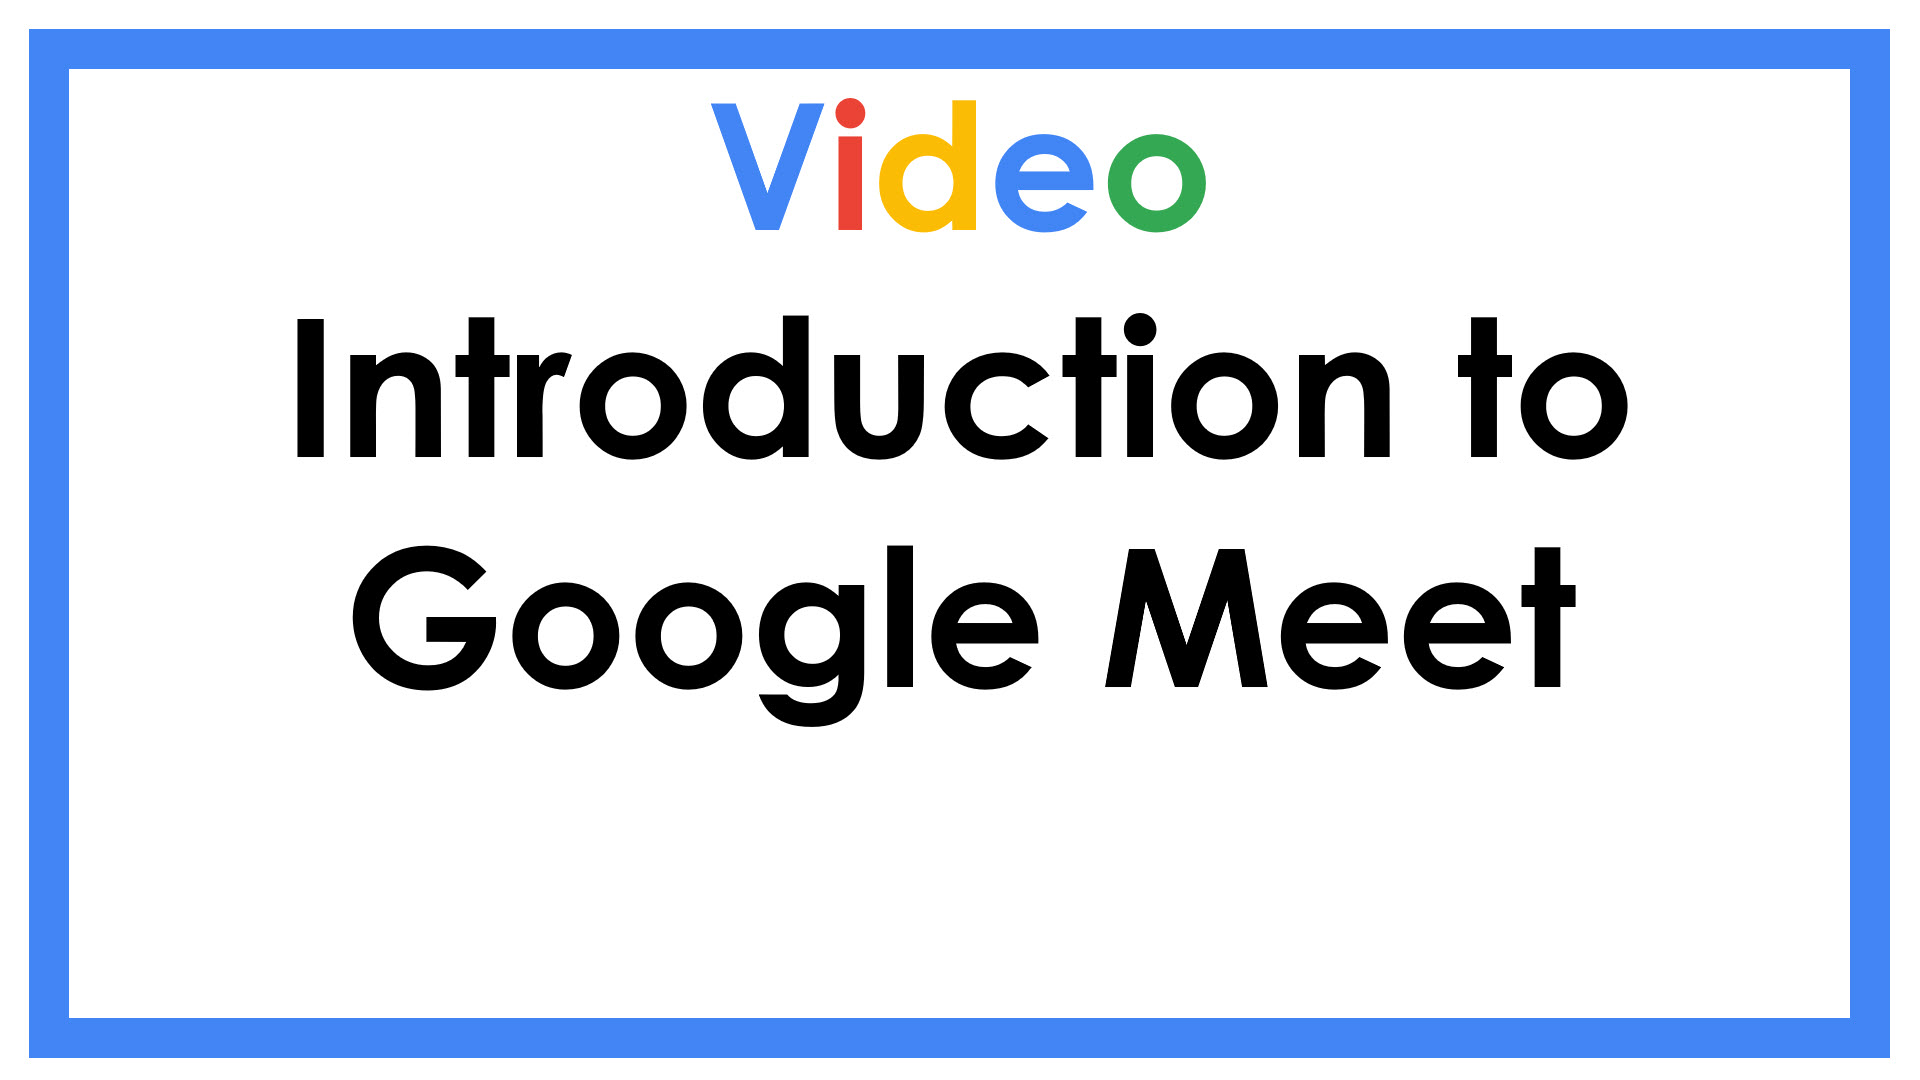 Introduction to Google Meet